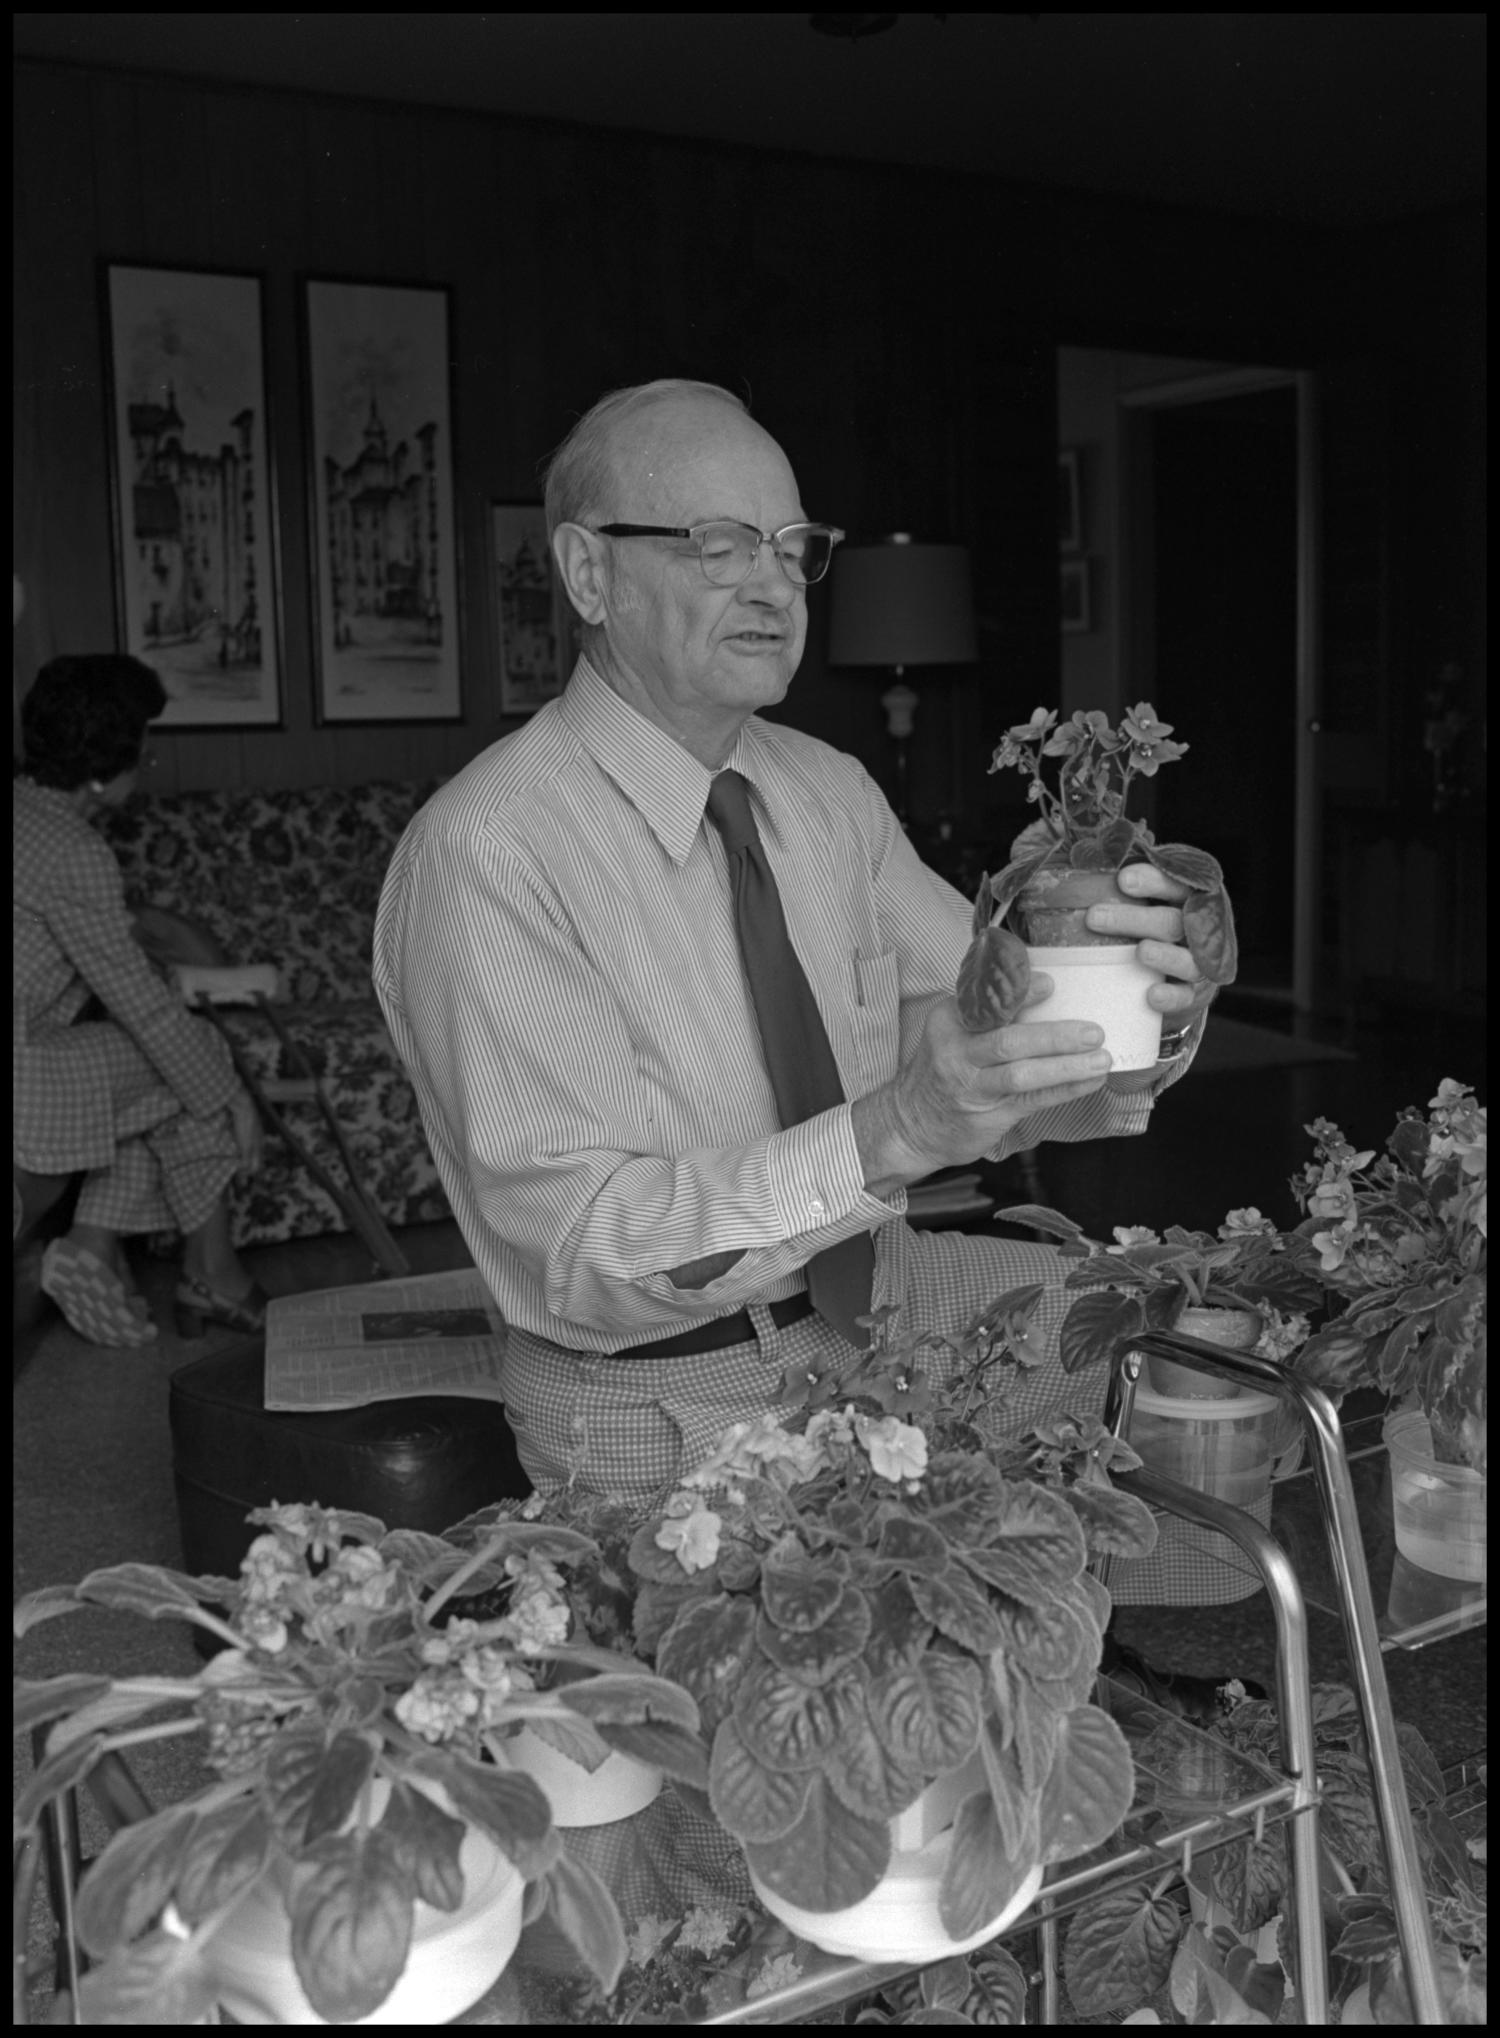 [Garland Brookshear placing a plant into a pot], Photograph of Garland Brookshear, a member of the Management faculty at NTSU, placing a pansy into a larger pot. Behind him a woman sitting on a couch is visible. Brookshear is being photographed for his retirement.,